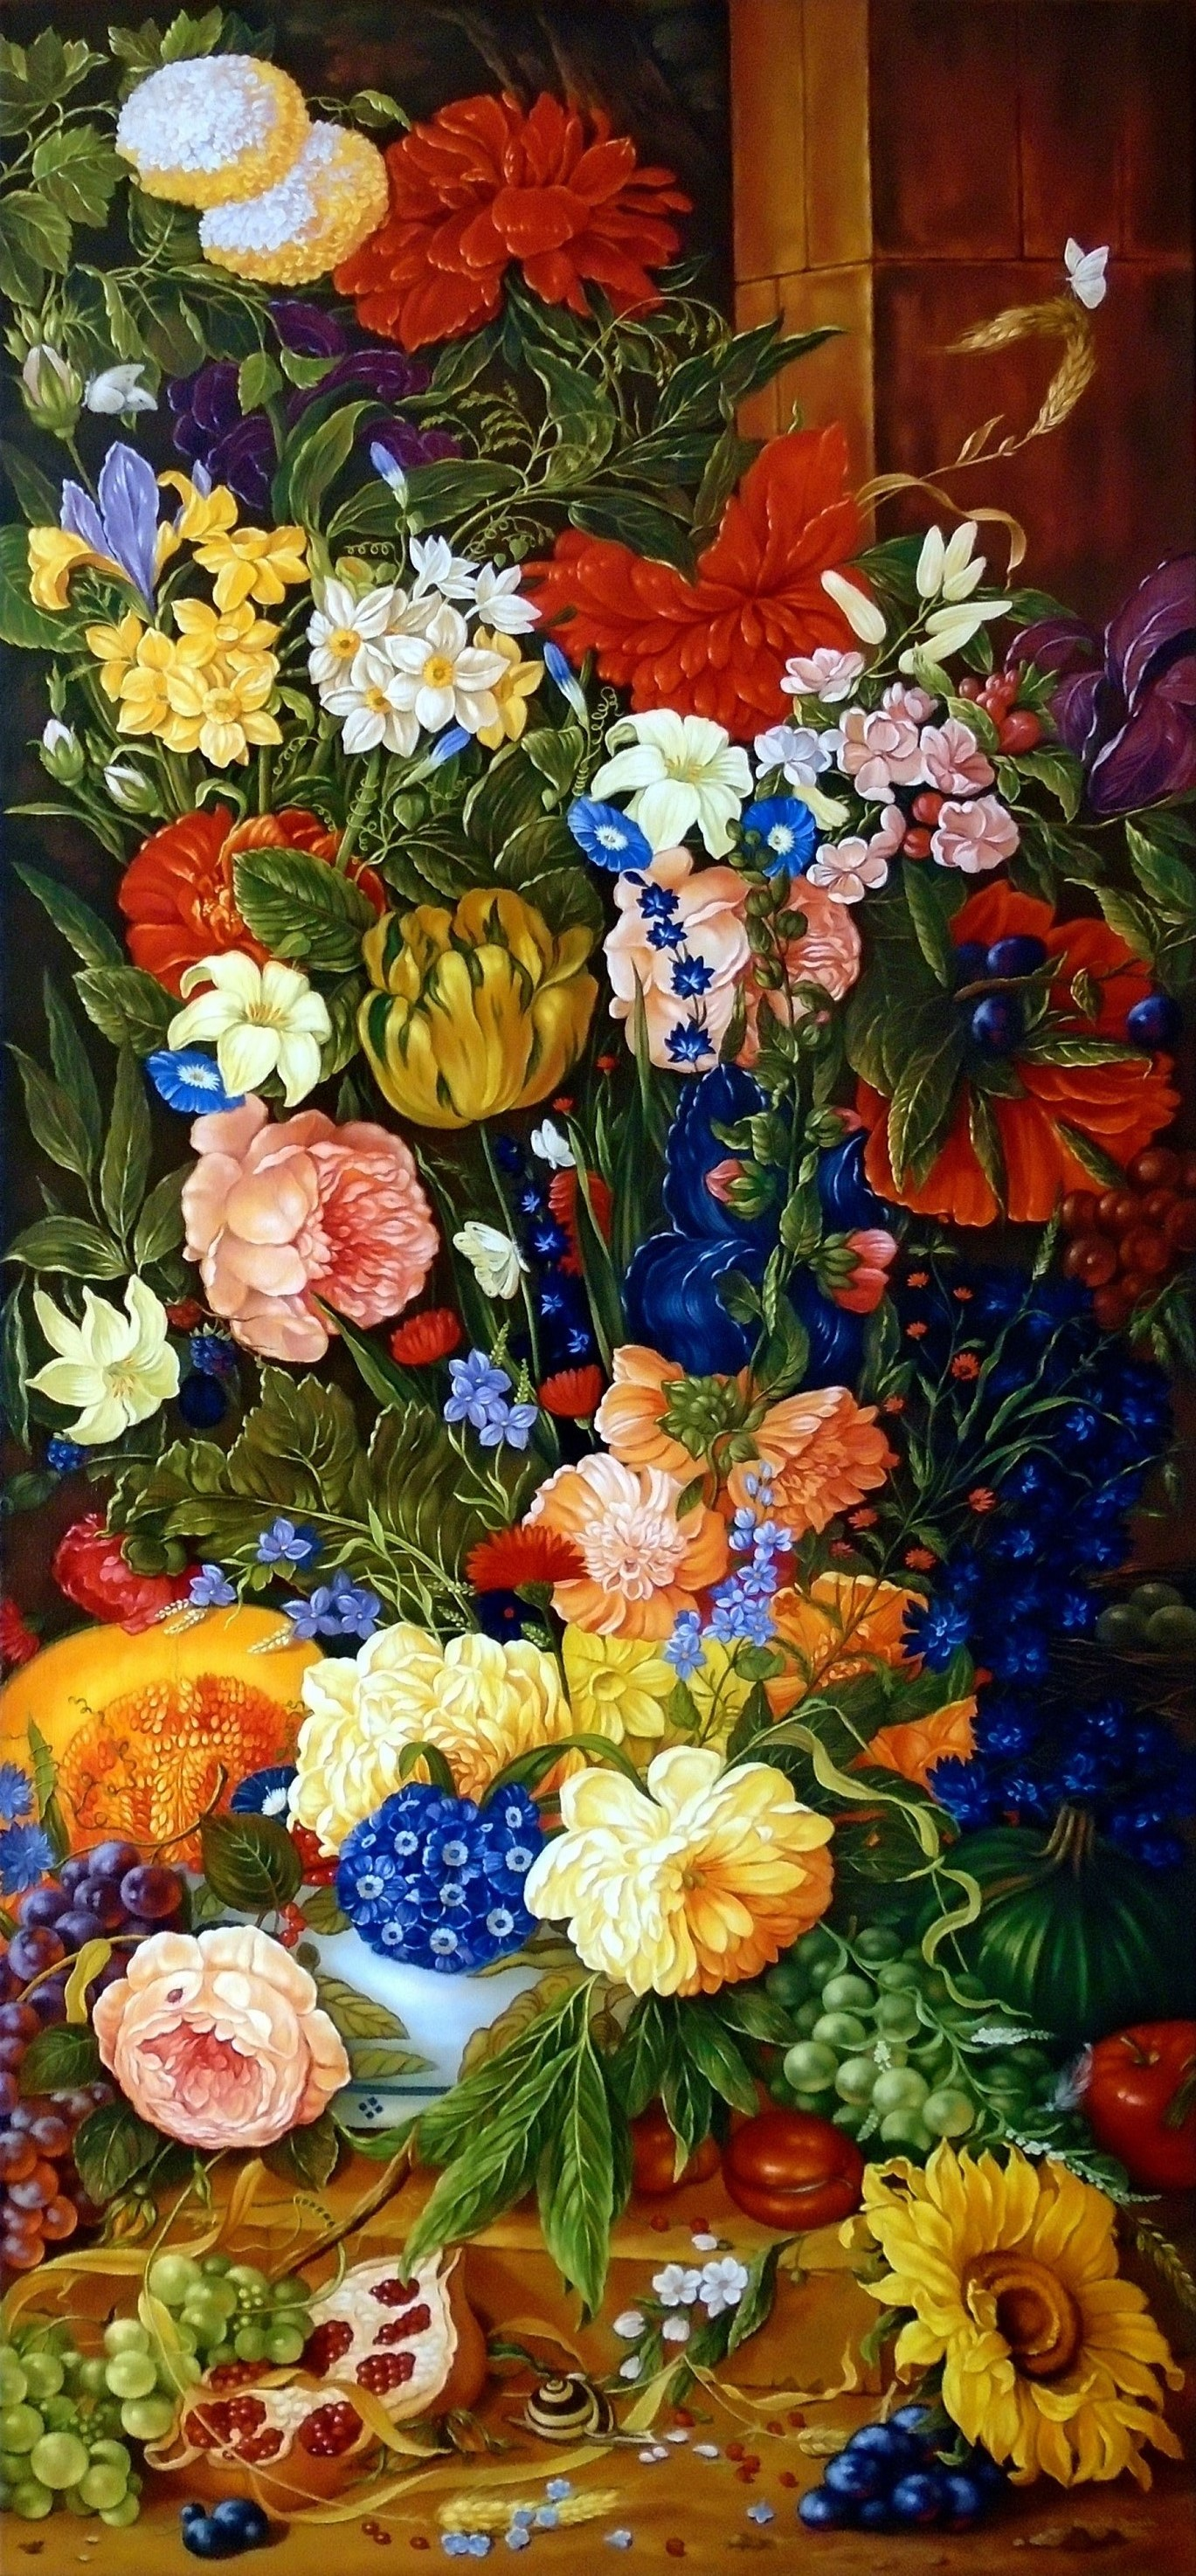 Still life, Everything you can find in the garden, 118cm x 51cm